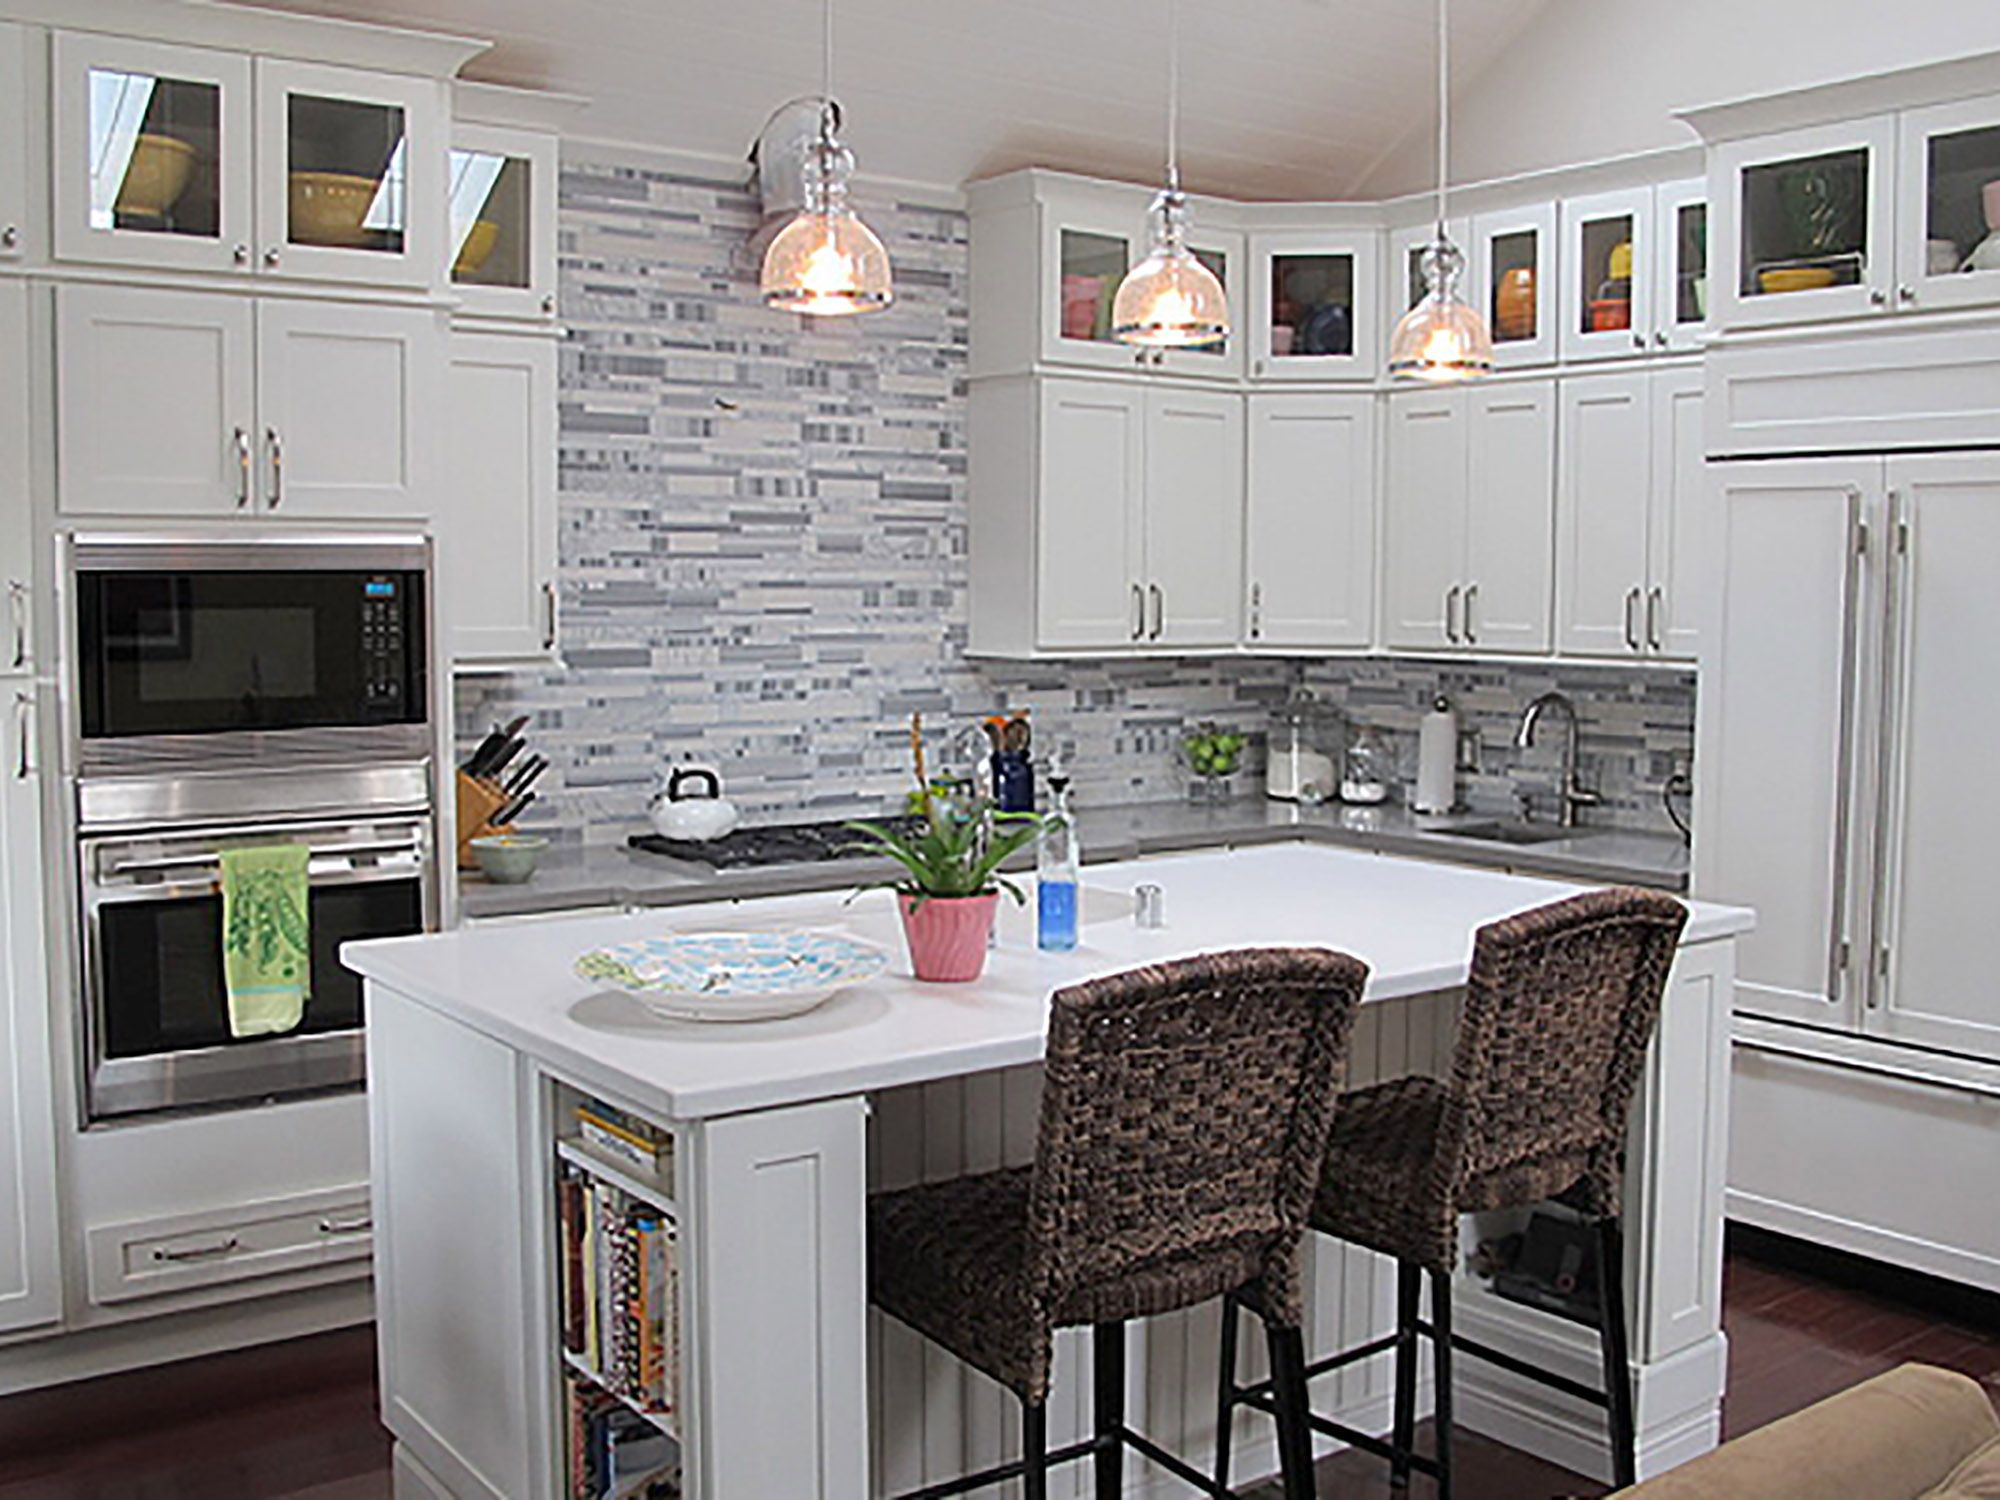 Kitchen Remodel Before After Gallery Inexpensive Kitchen Remodel Cheap Kitchen Remodel Kitchen Remodel Plans